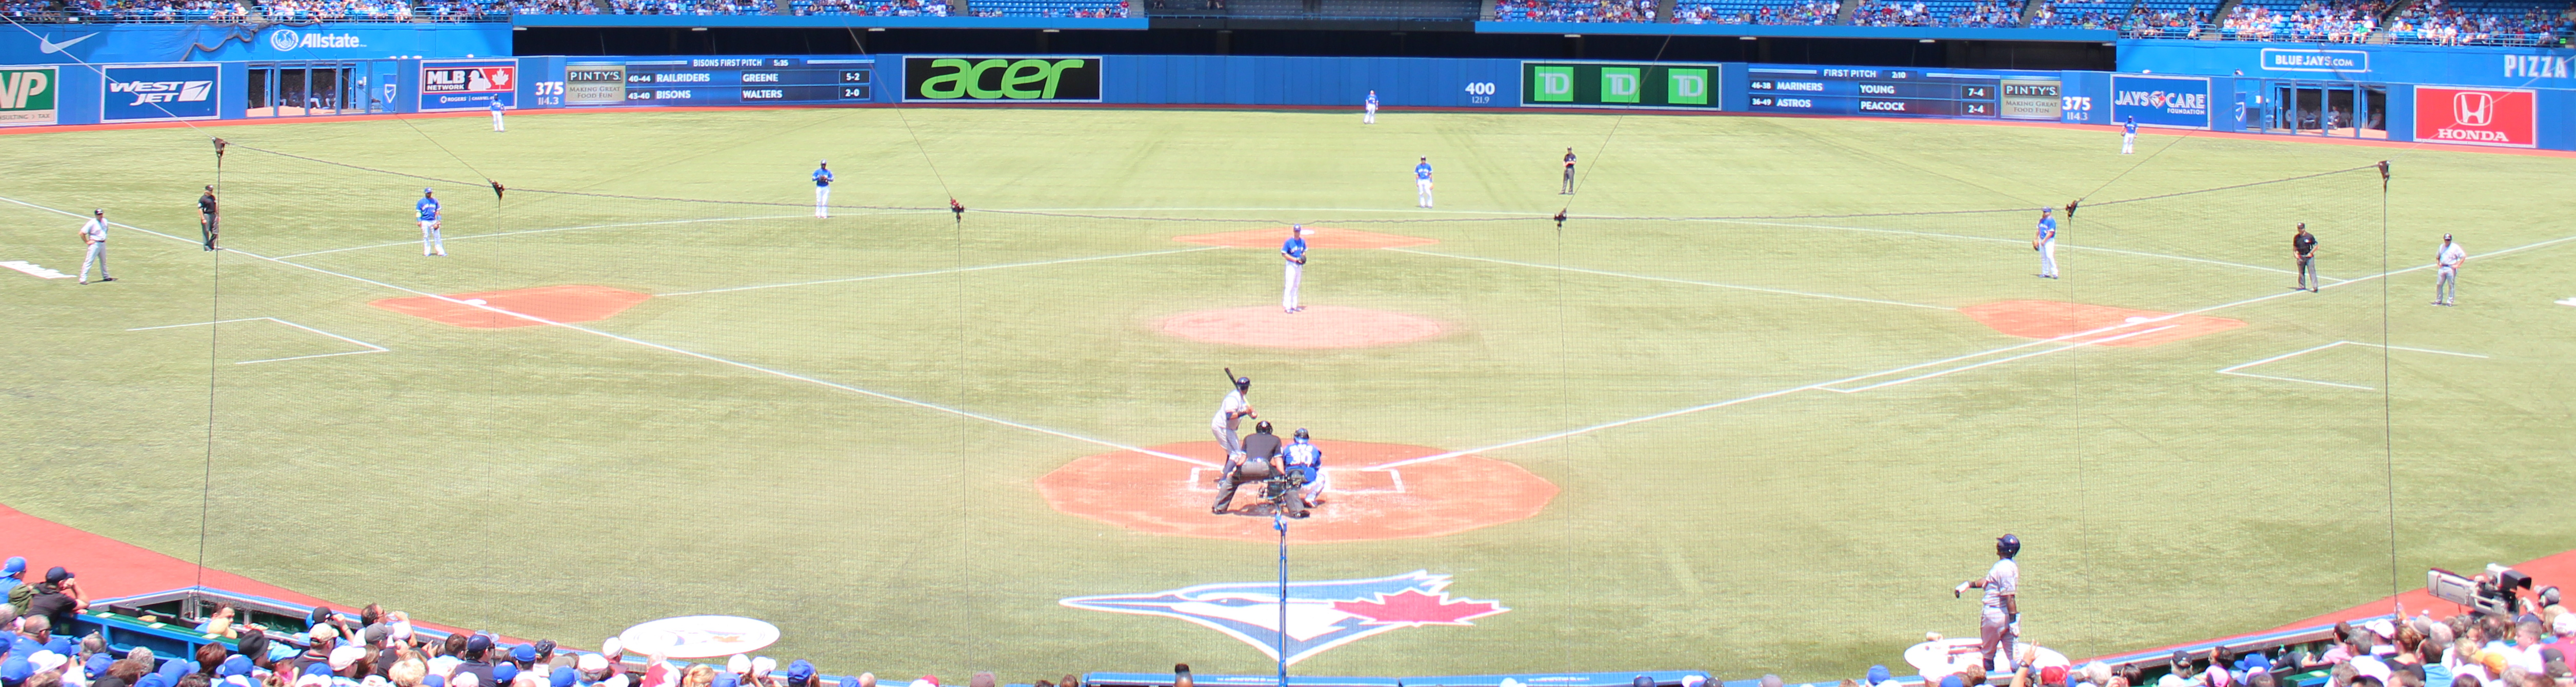 Rogers Centre, roof open, behind home plate